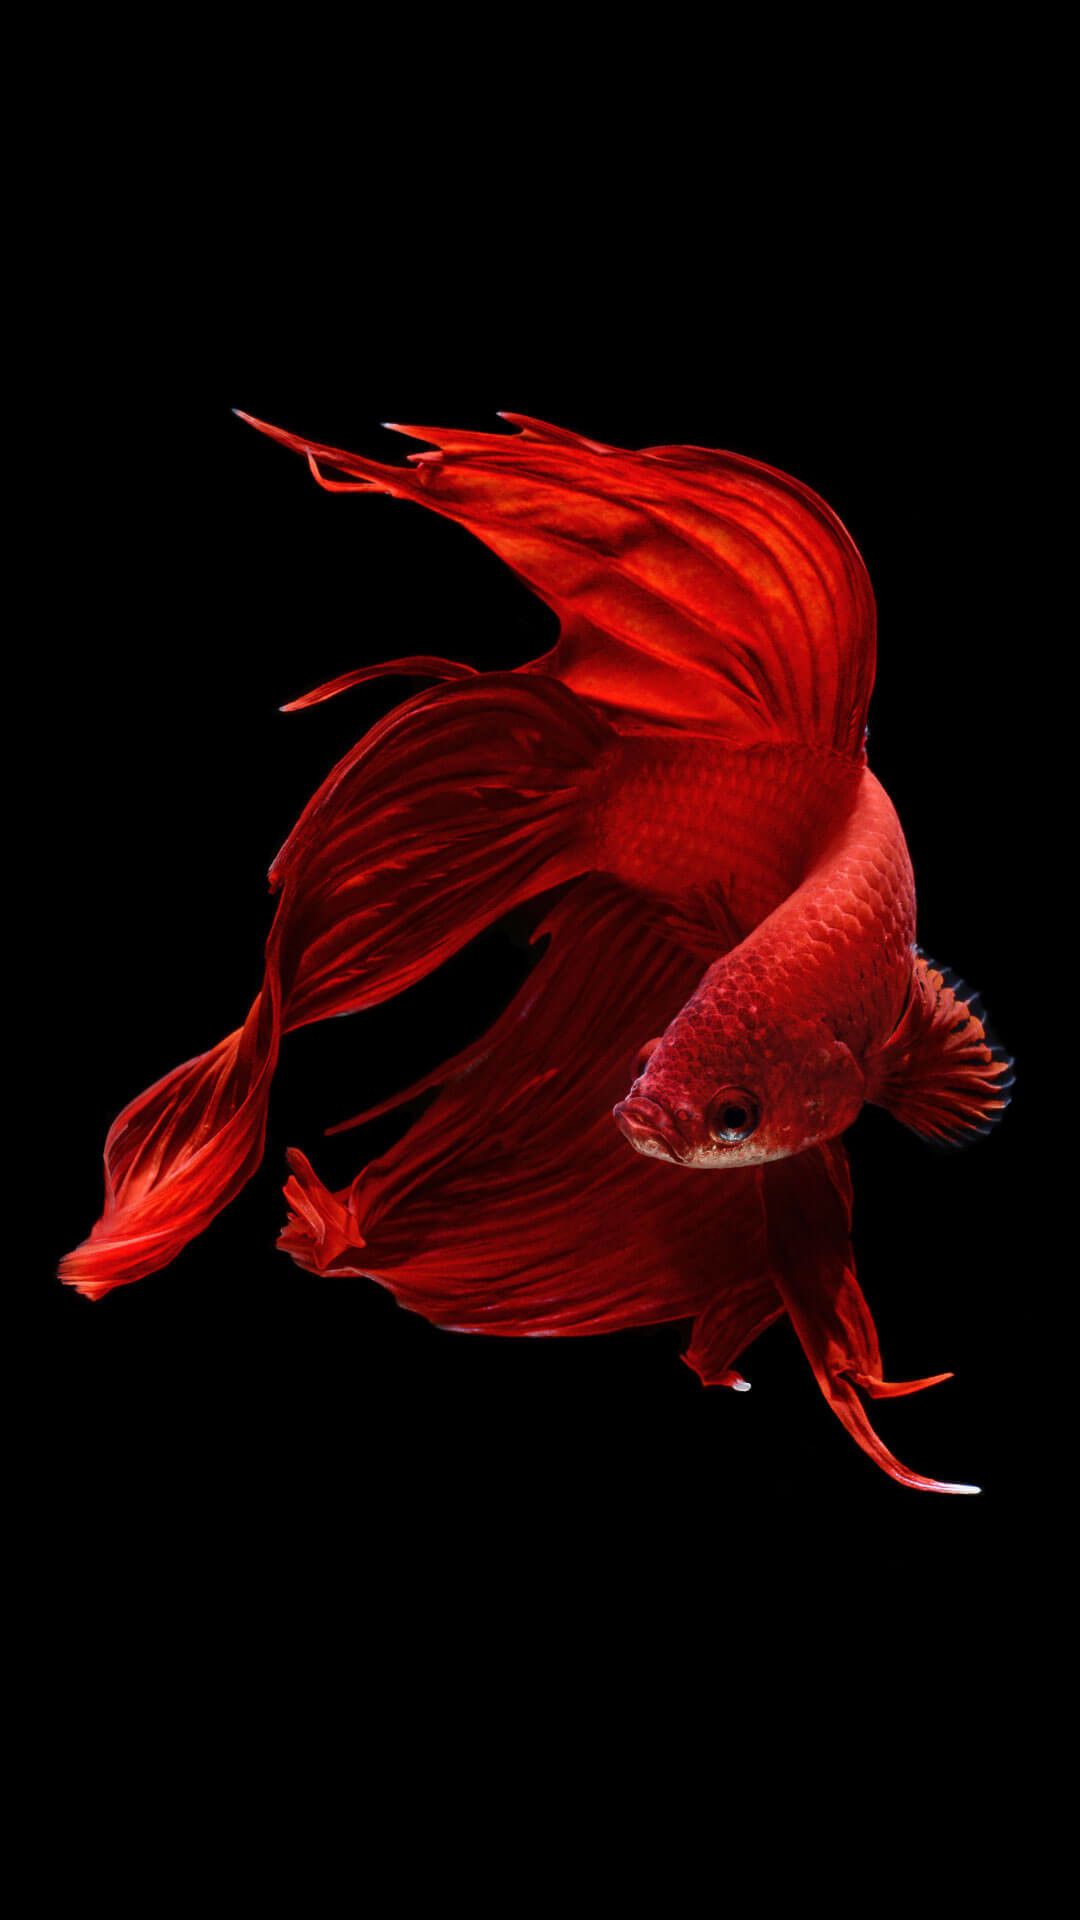 Iphone 6s fish wallpapers 75 images - Iphone 6s box wallpaper ...